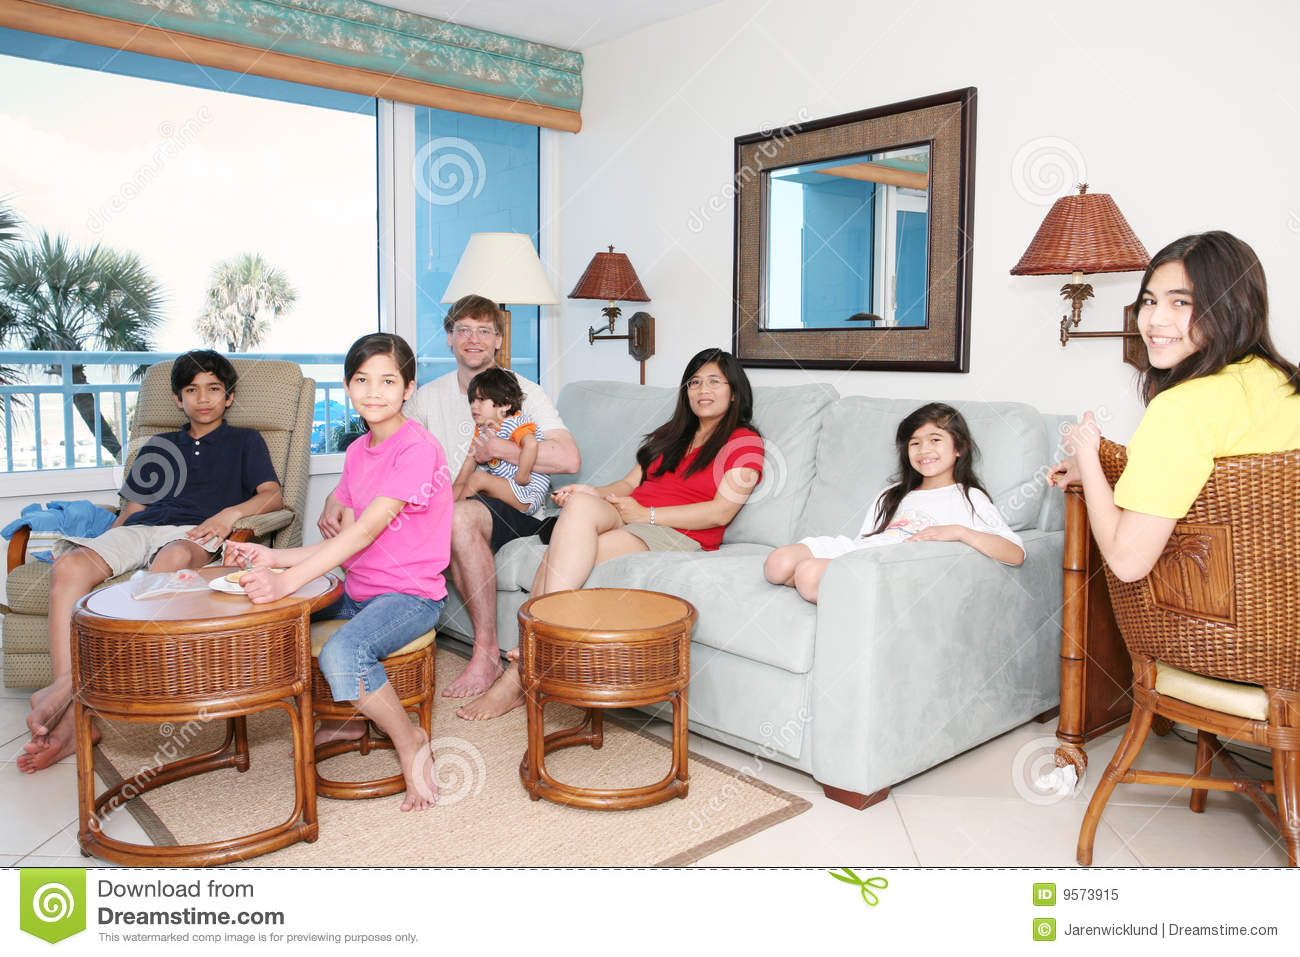 Family Relaxing In Living Room Stock Image - Image of mother, rattan ...